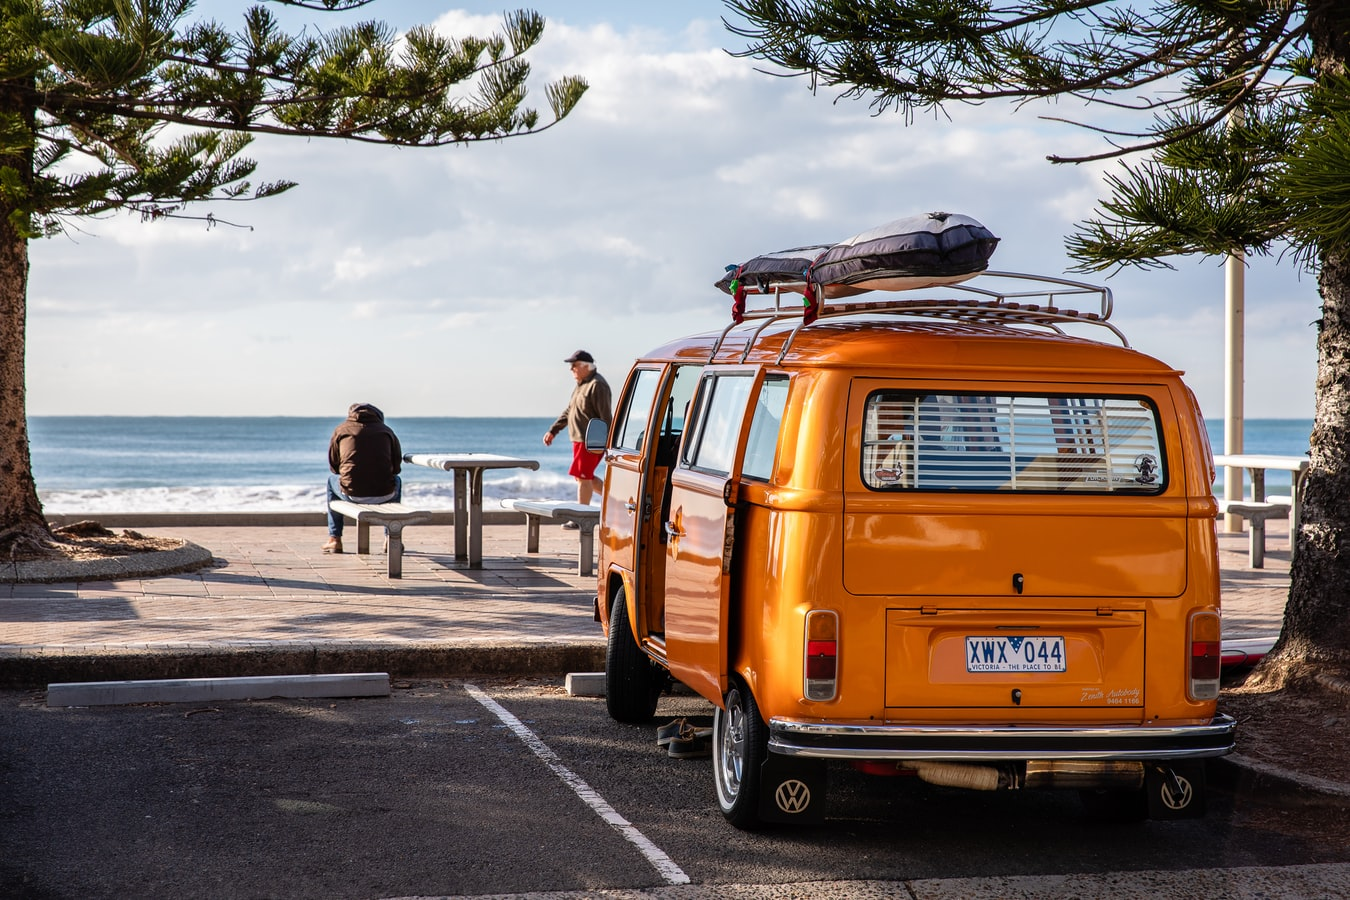 Yellow van parked by a beach